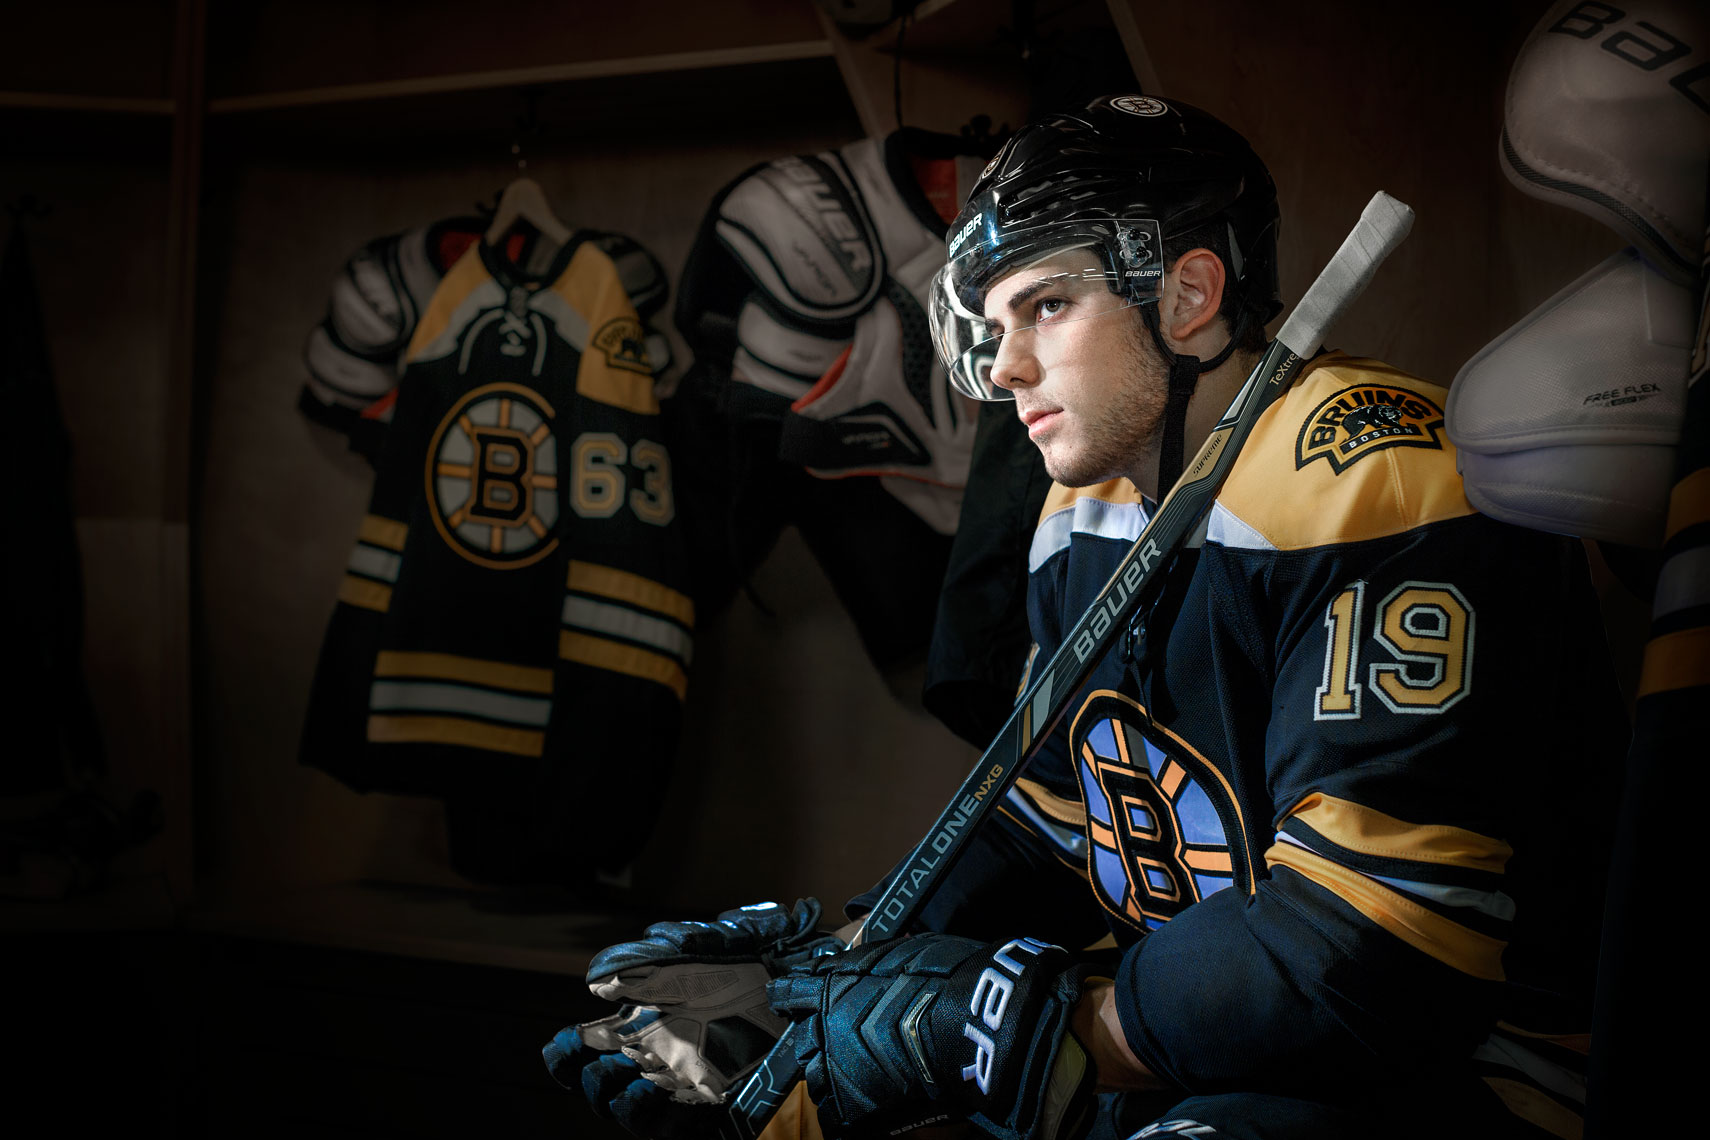 National Hockey League: Boston Bruins center Tyler Seguin